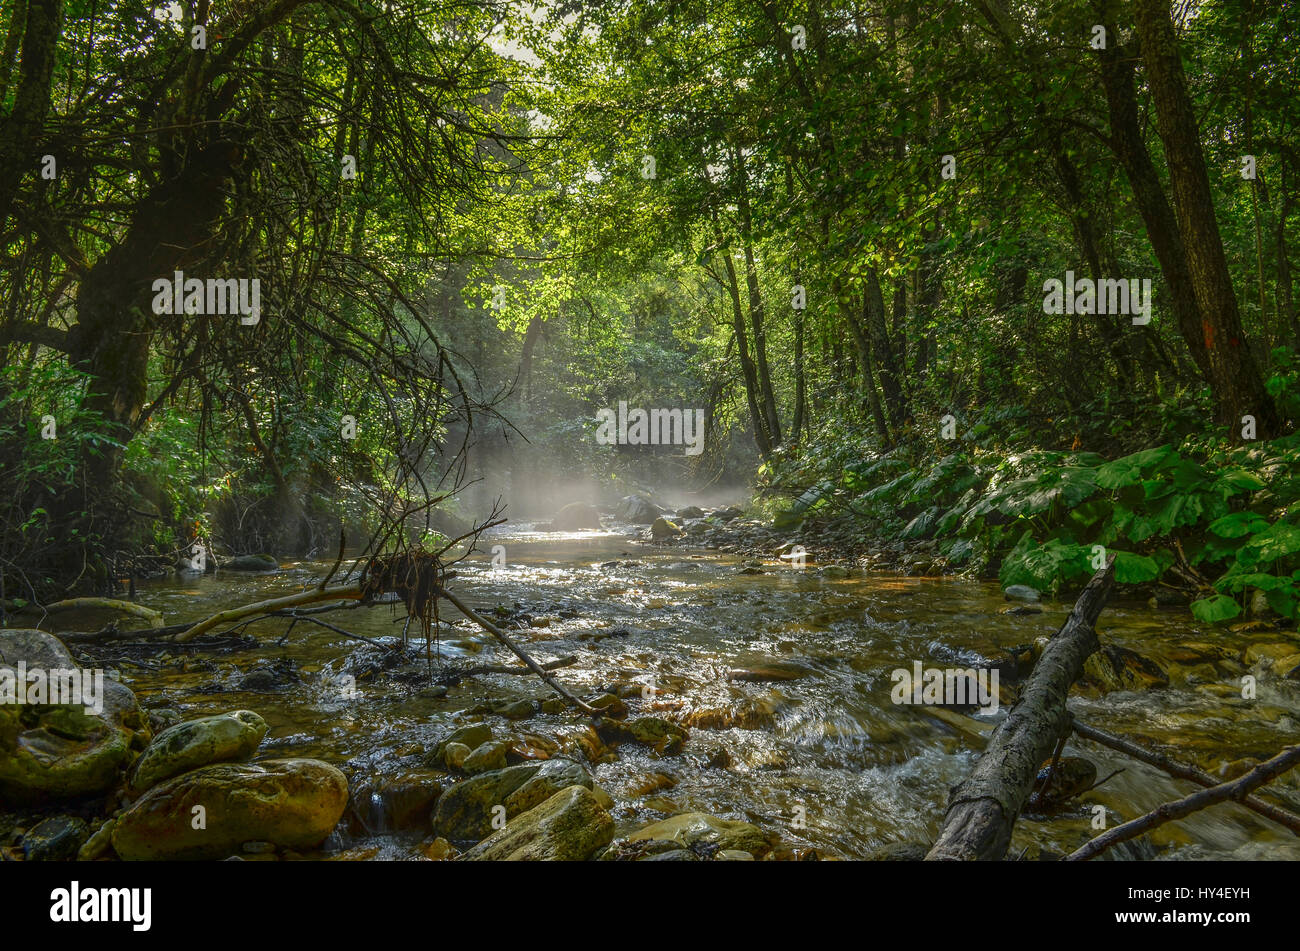 Wild Nature – Relaxing Background - Stock Image